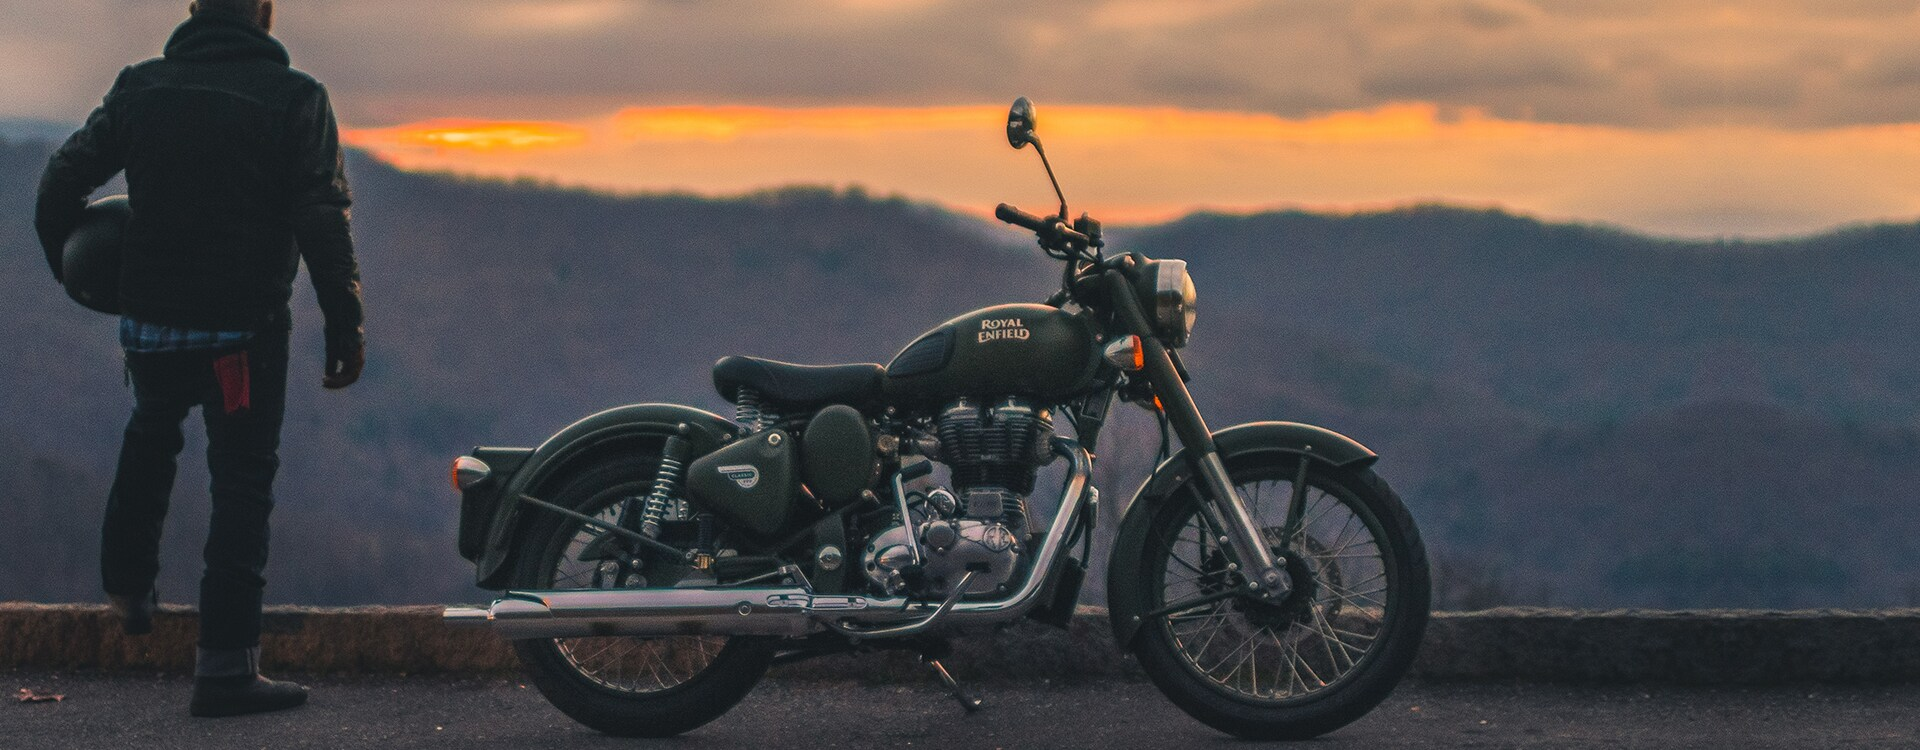 Classic 500 Battle Green - Timeless styling